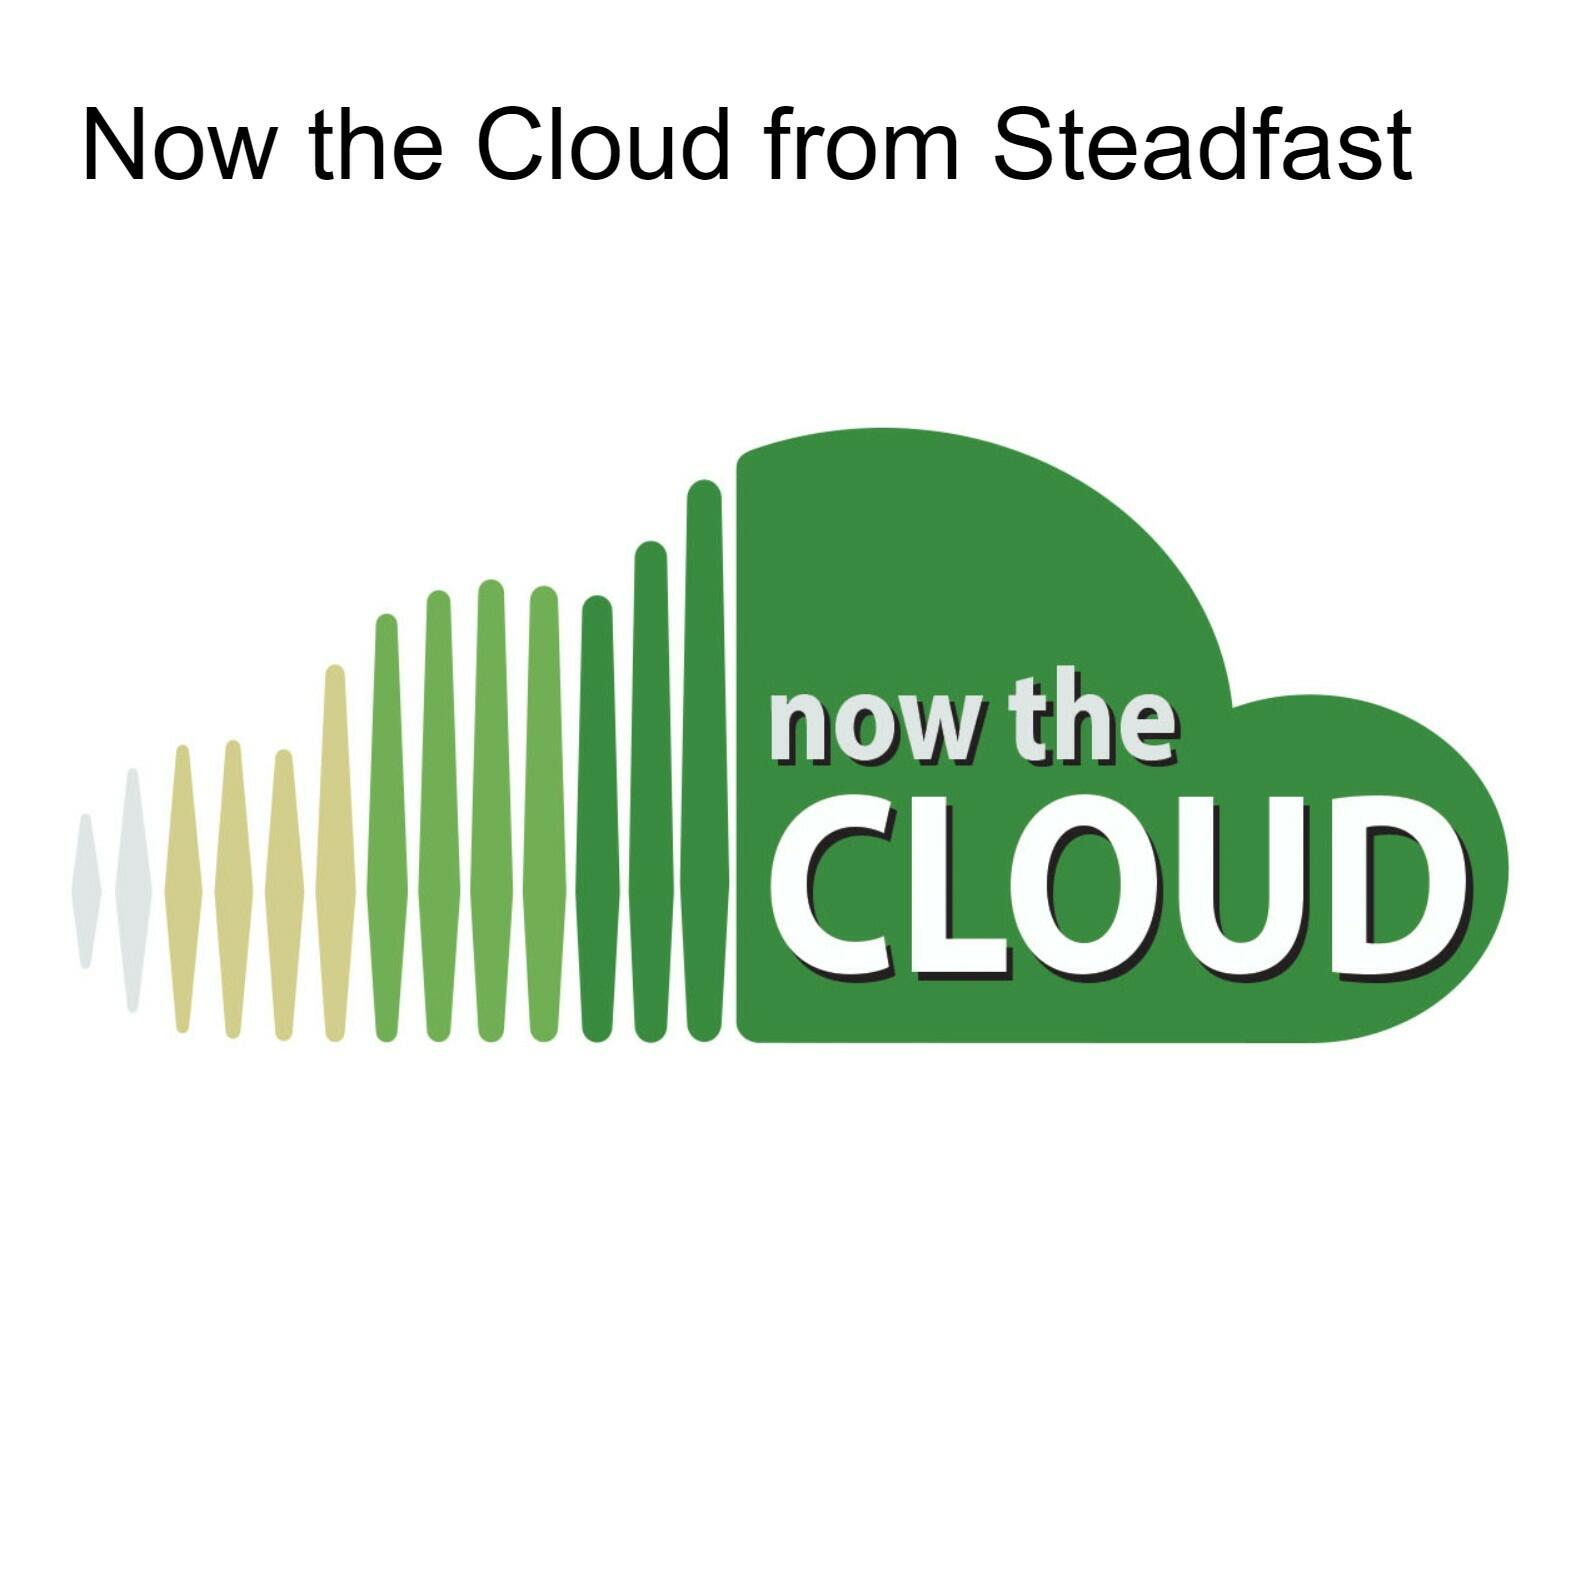 Now the Cloud from Steadfast